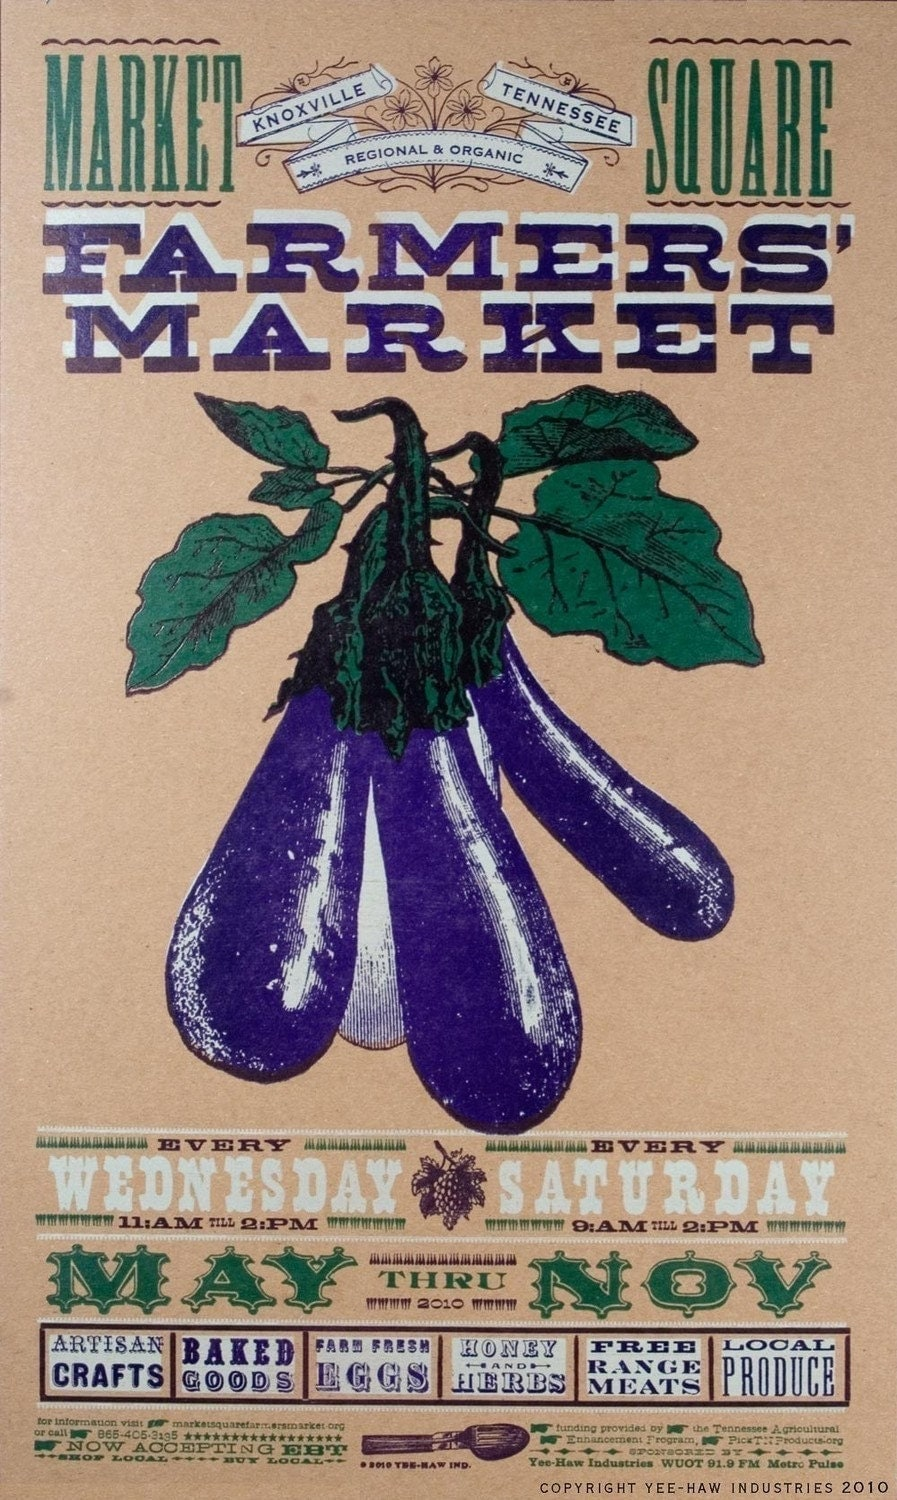 FARMERS MARKET EGGPLANT POSTER PRINT HAND PRINTED LETTERPRESS NEW FOR 2010